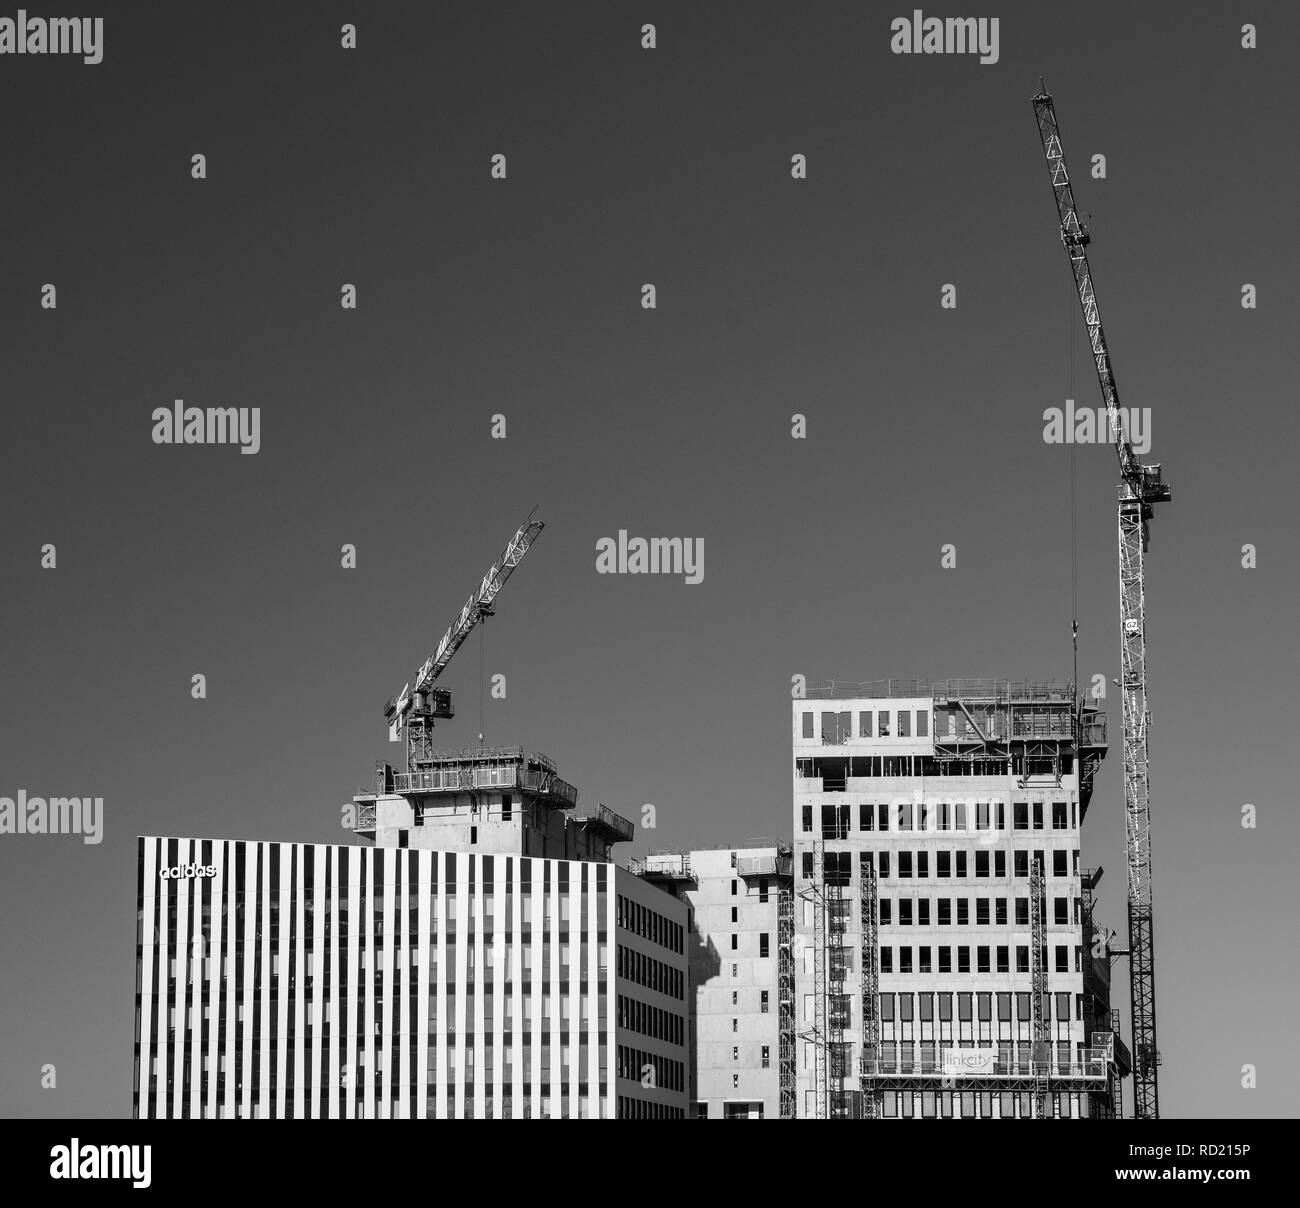 7265030ed7a Adidas Sportswear Stock Photos   Adidas Sportswear Stock Images - Alamy